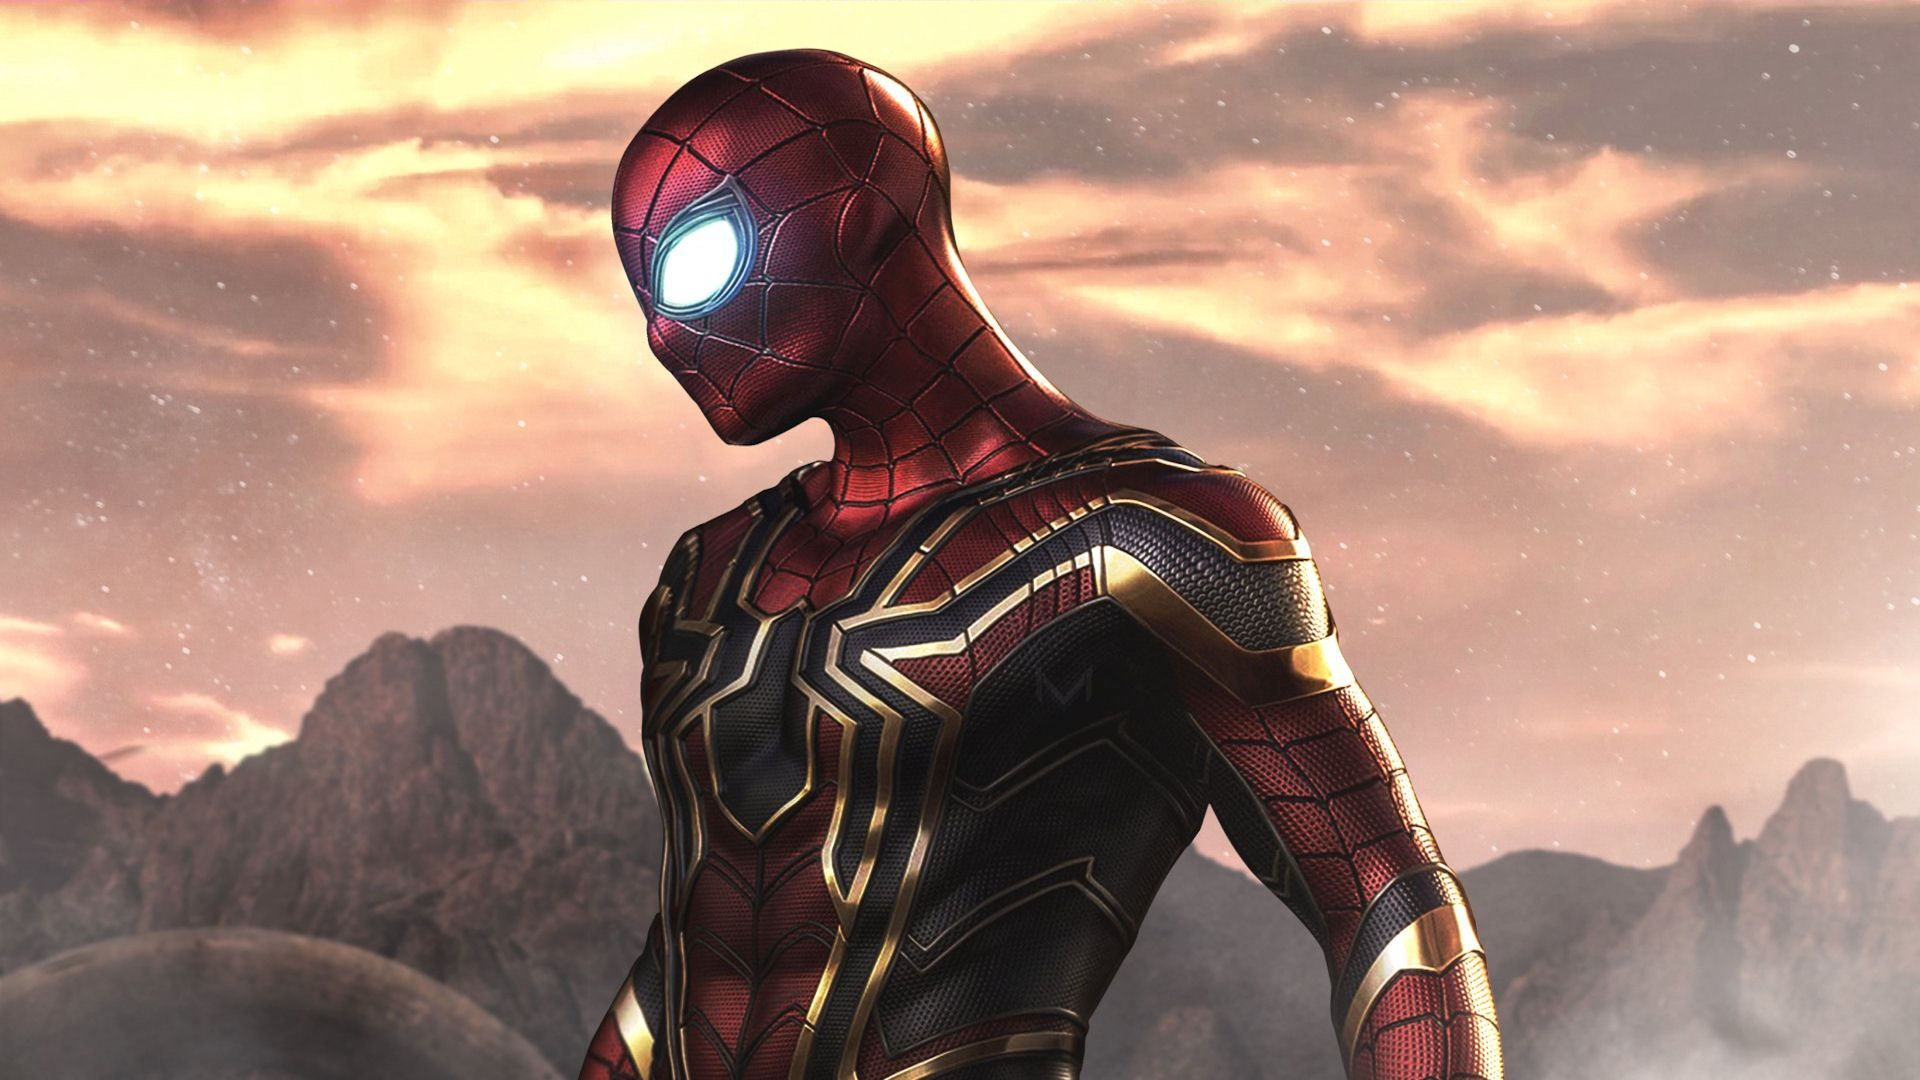 Cool Marvel Wallpapers HD #2 - Epic Heroes Select - 45 x Image Gallery | Marvel | Marvel ...